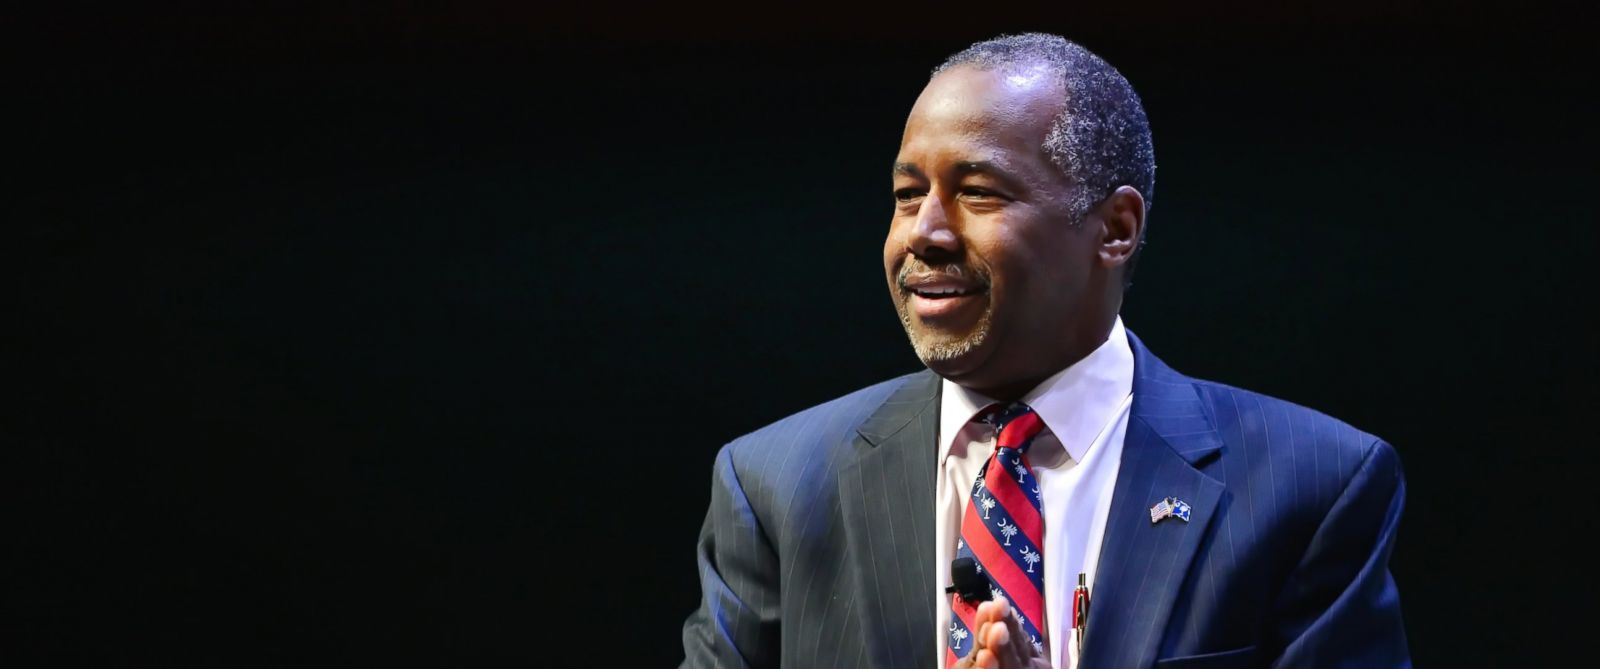 PHOTO: Republican presidential candidate Ben Carson speaks at a presidential forum sponsored by Heritage Action at the Bon Secours Wellness Arena, Sept. 18, 2015, in Greenville, S.C.